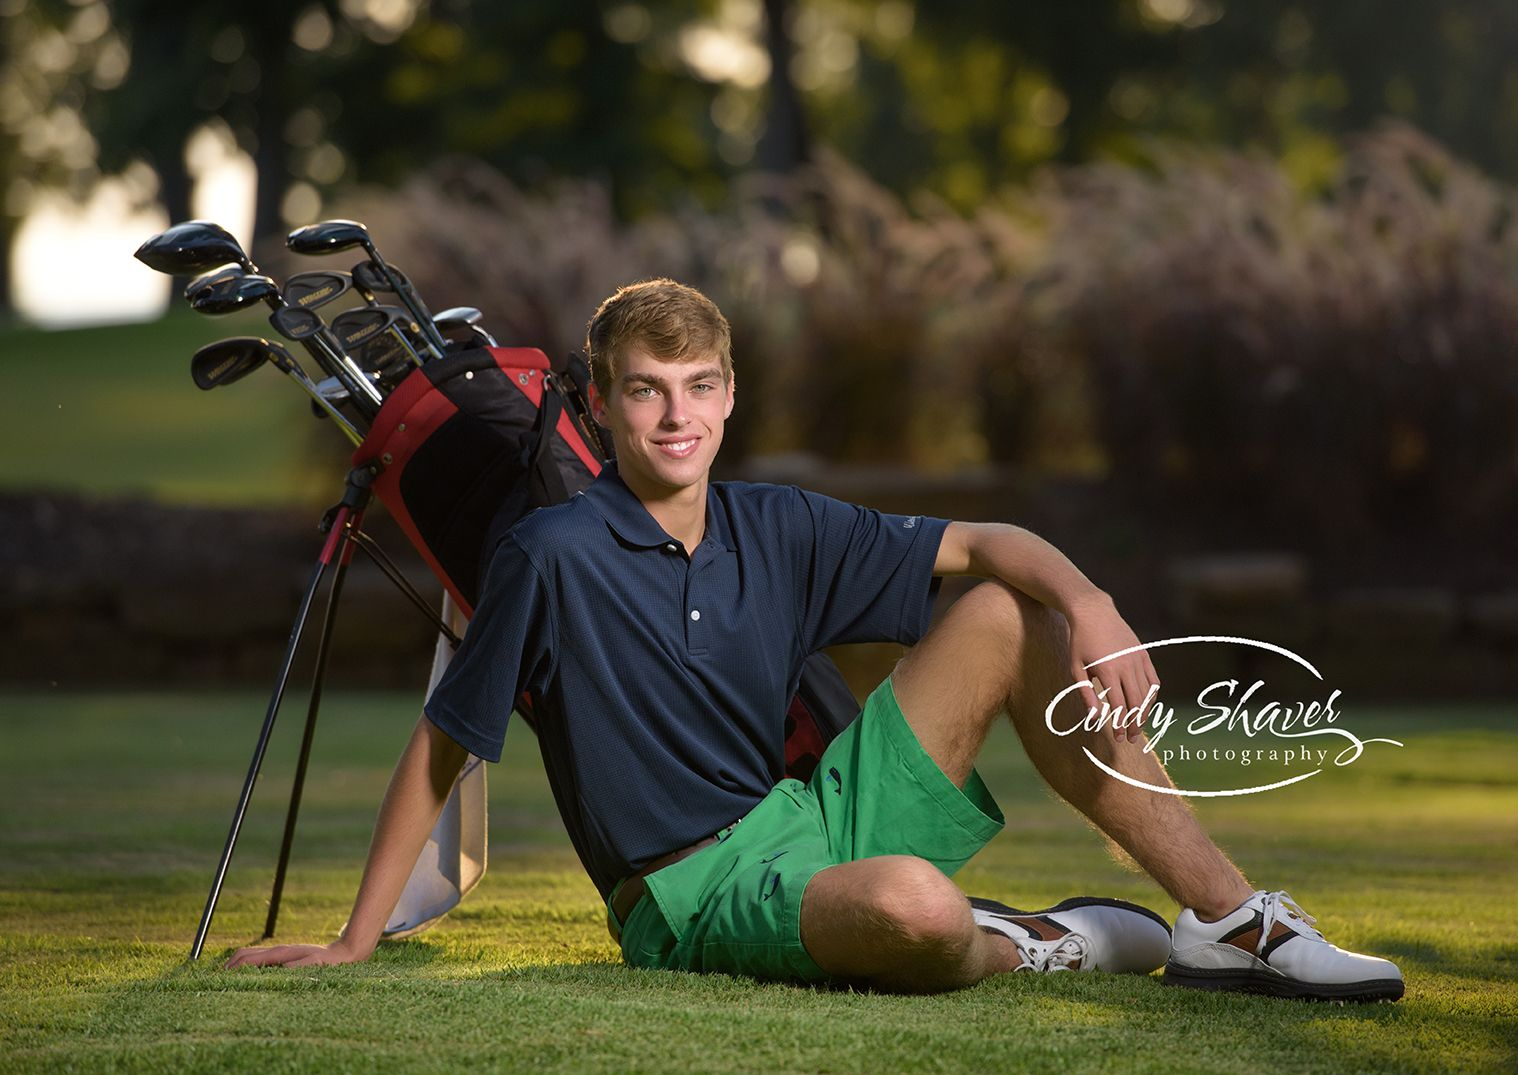 Senior Pictures Senior Guy On Golf Course Golf Themed Senior Session Outdoor Senior